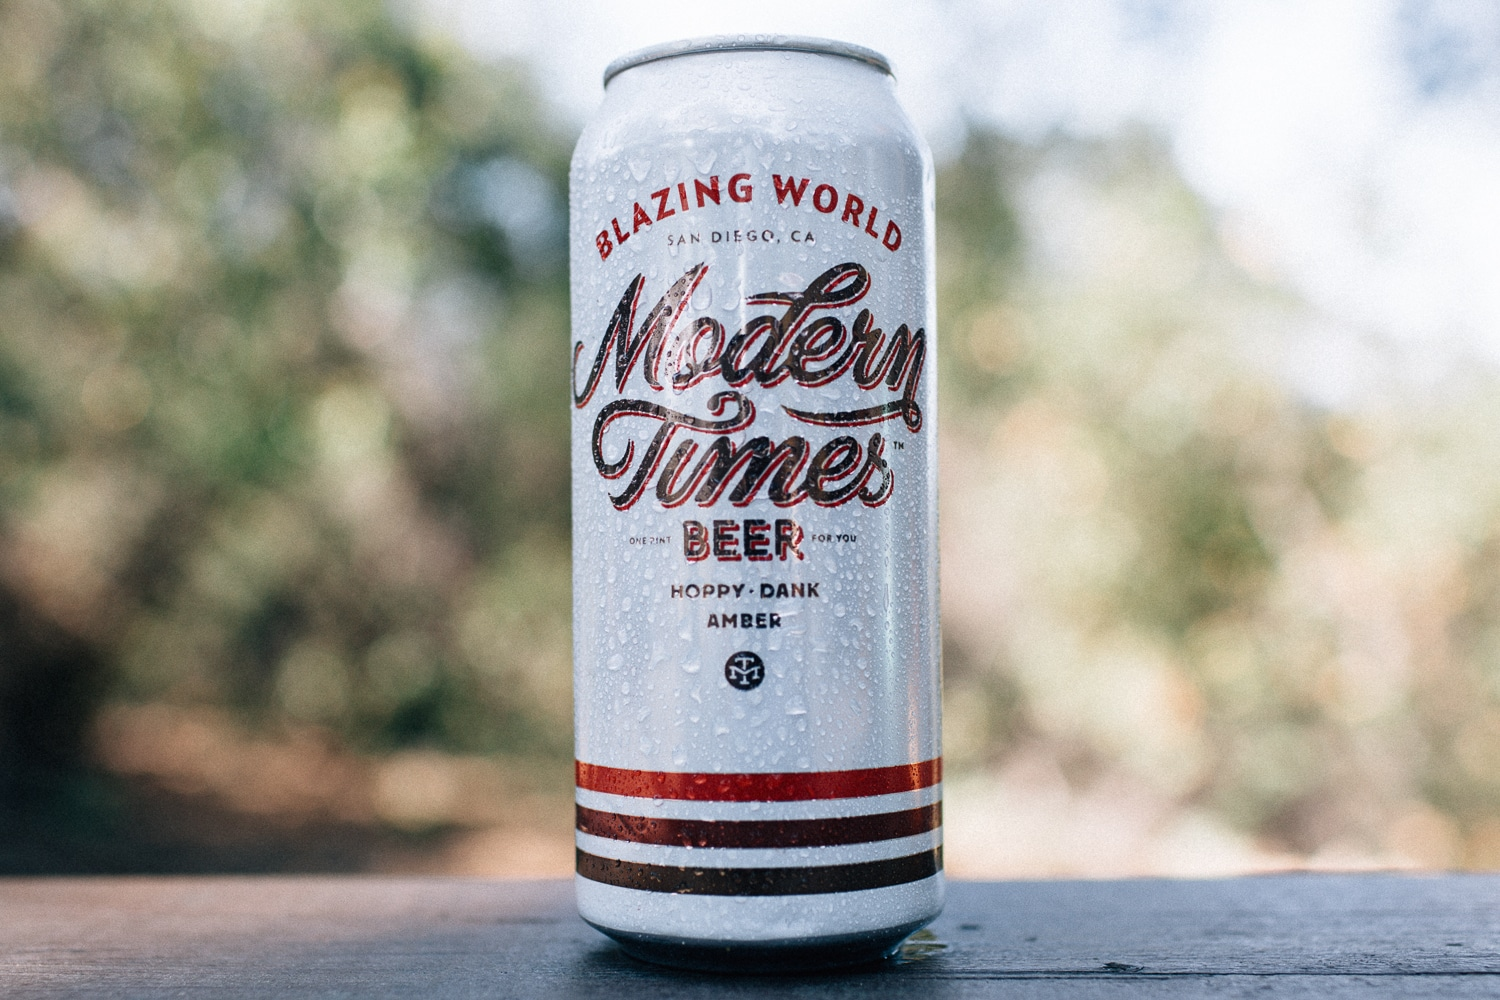 Blazing World by Modern Times